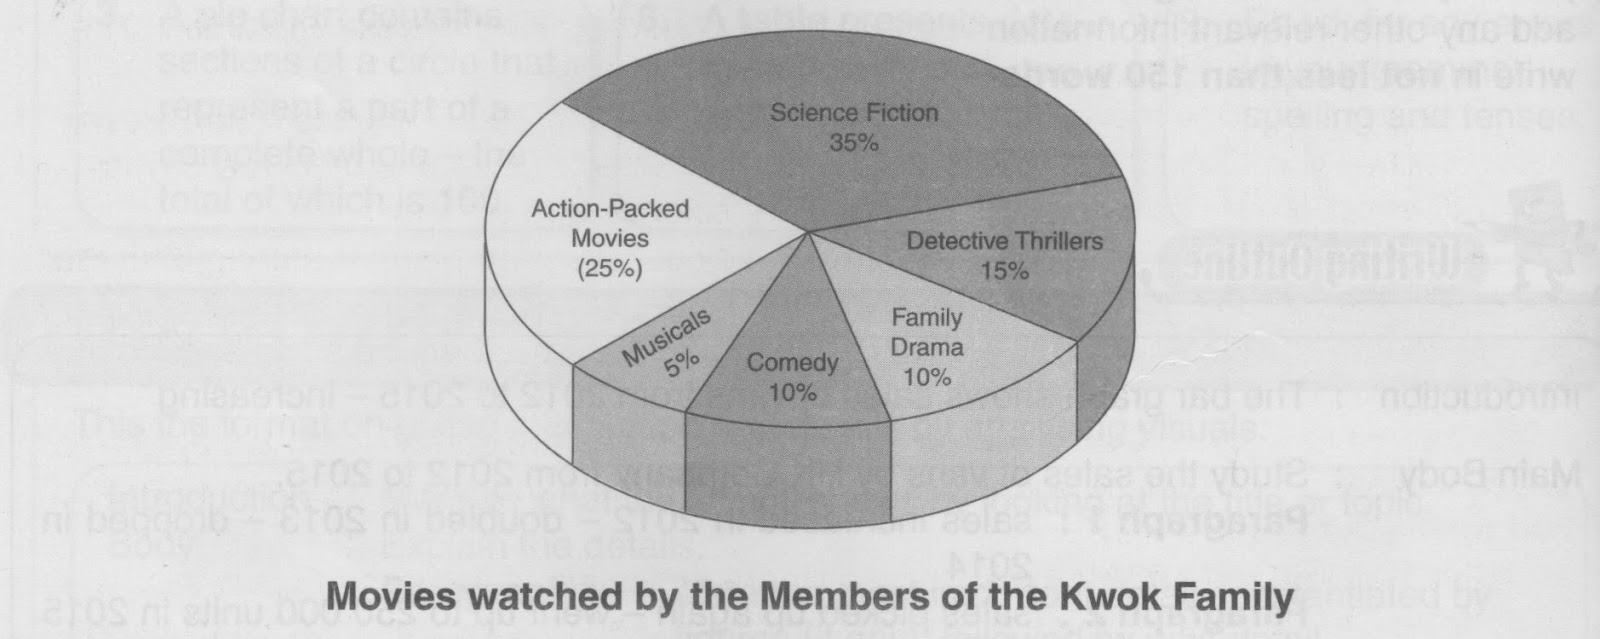 Learning english daily pt3 guided writing pie chart bar graph the pie chart shows the genres of movies watched by the members of the kwok family which consists of the parents three sons and two daughters nvjuhfo Images